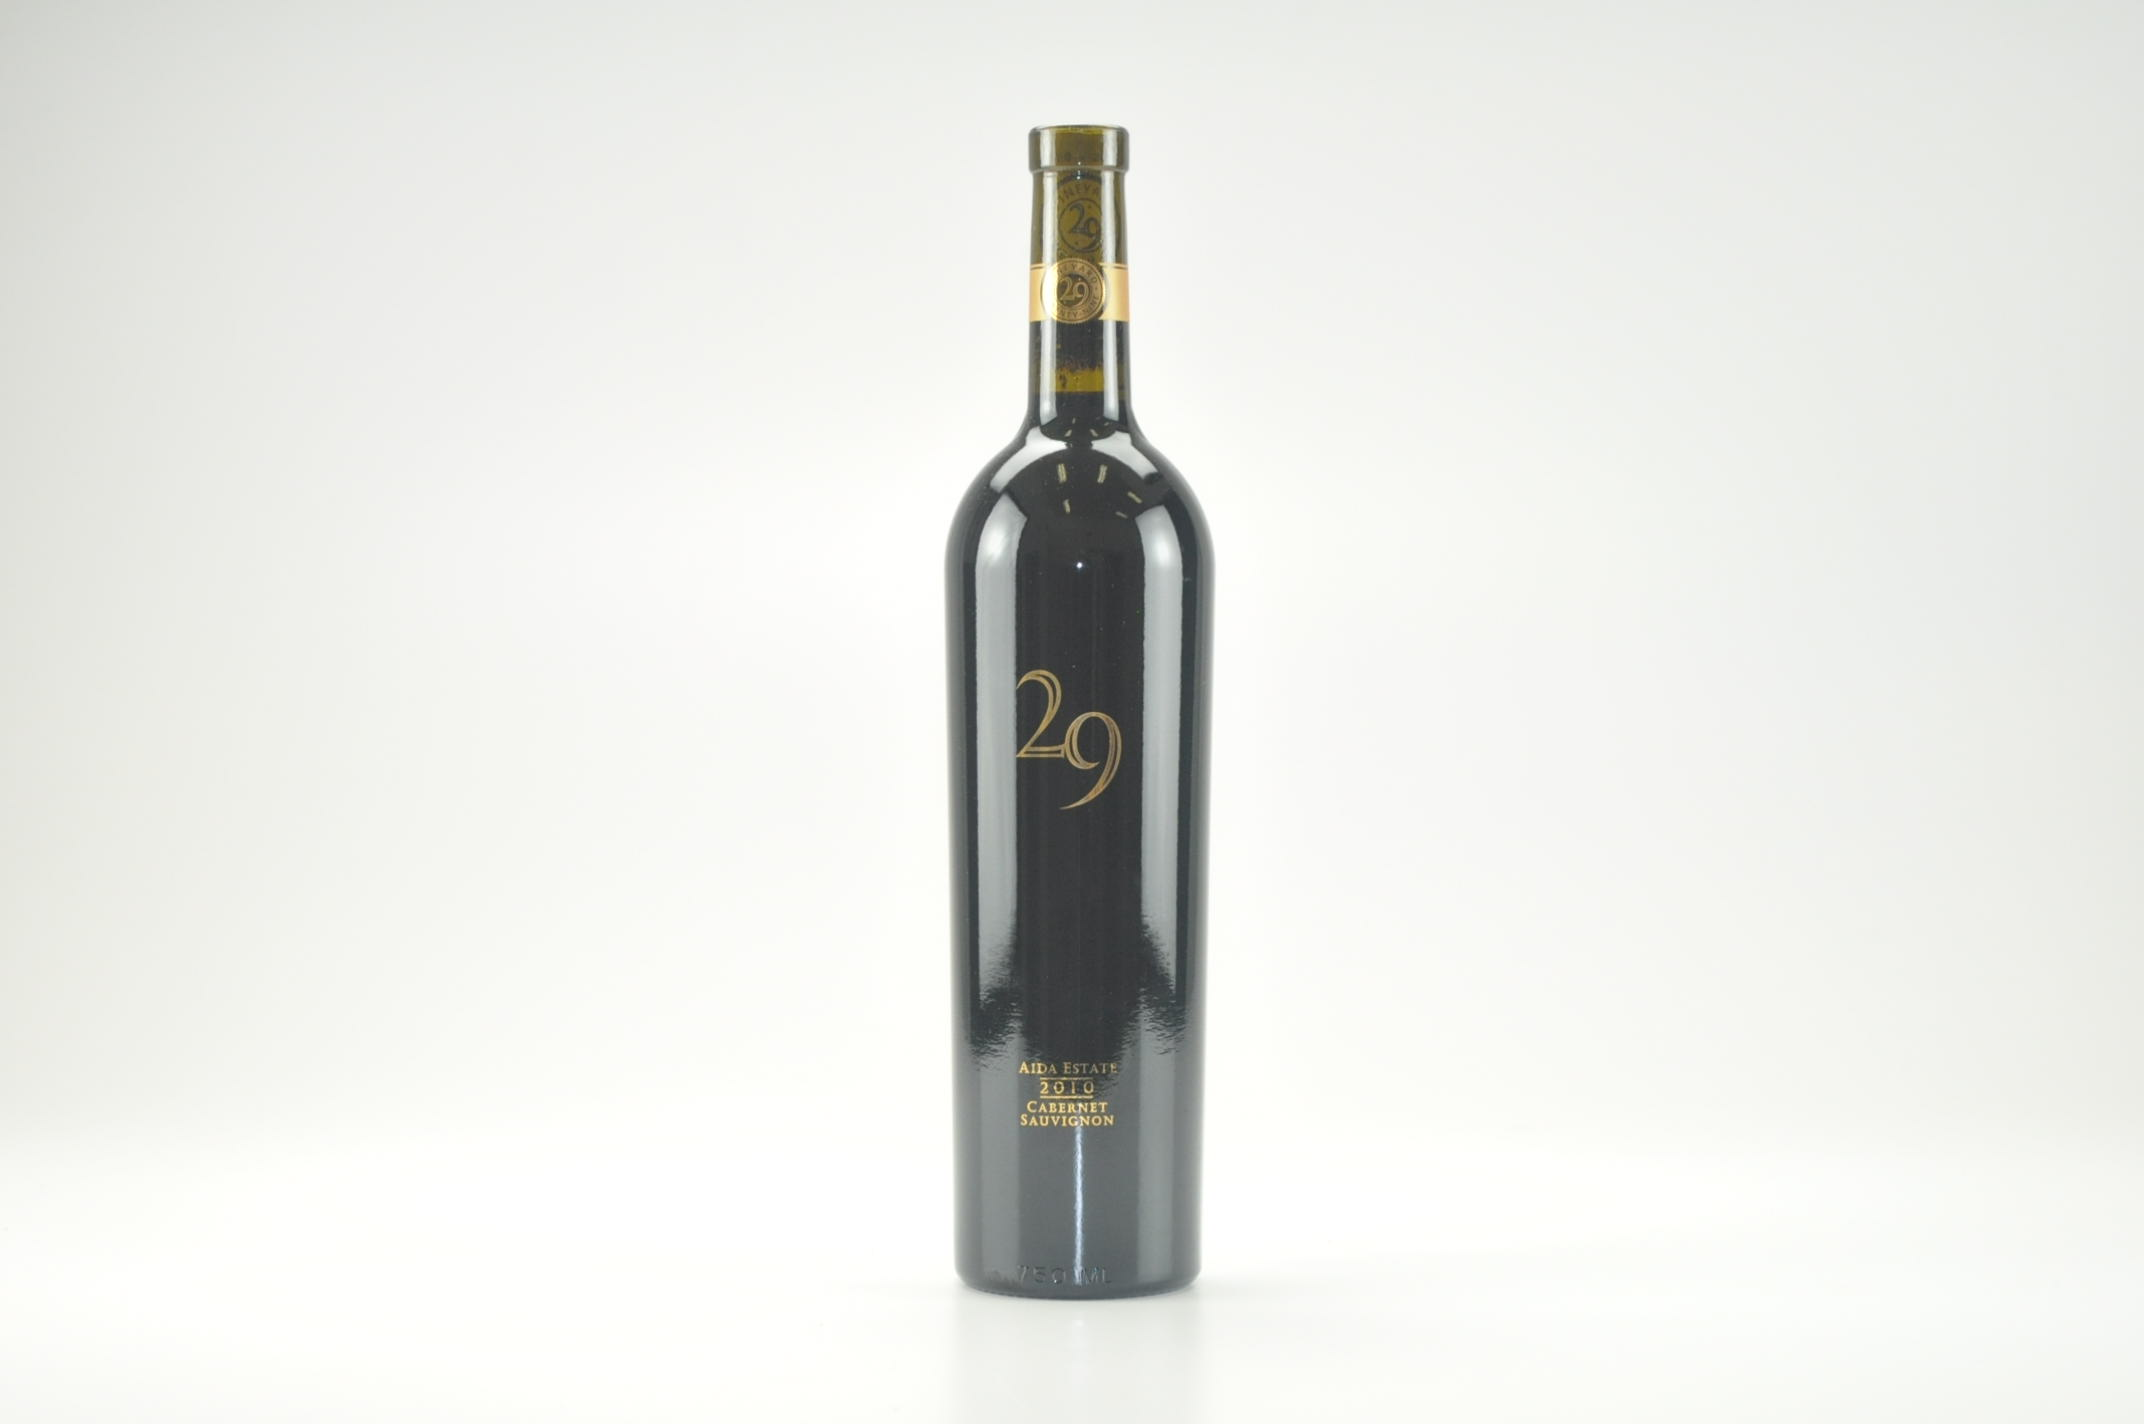 2010 Vineyard 29 Cabernet Sauvignon Aida Estate Vineyard RP--95